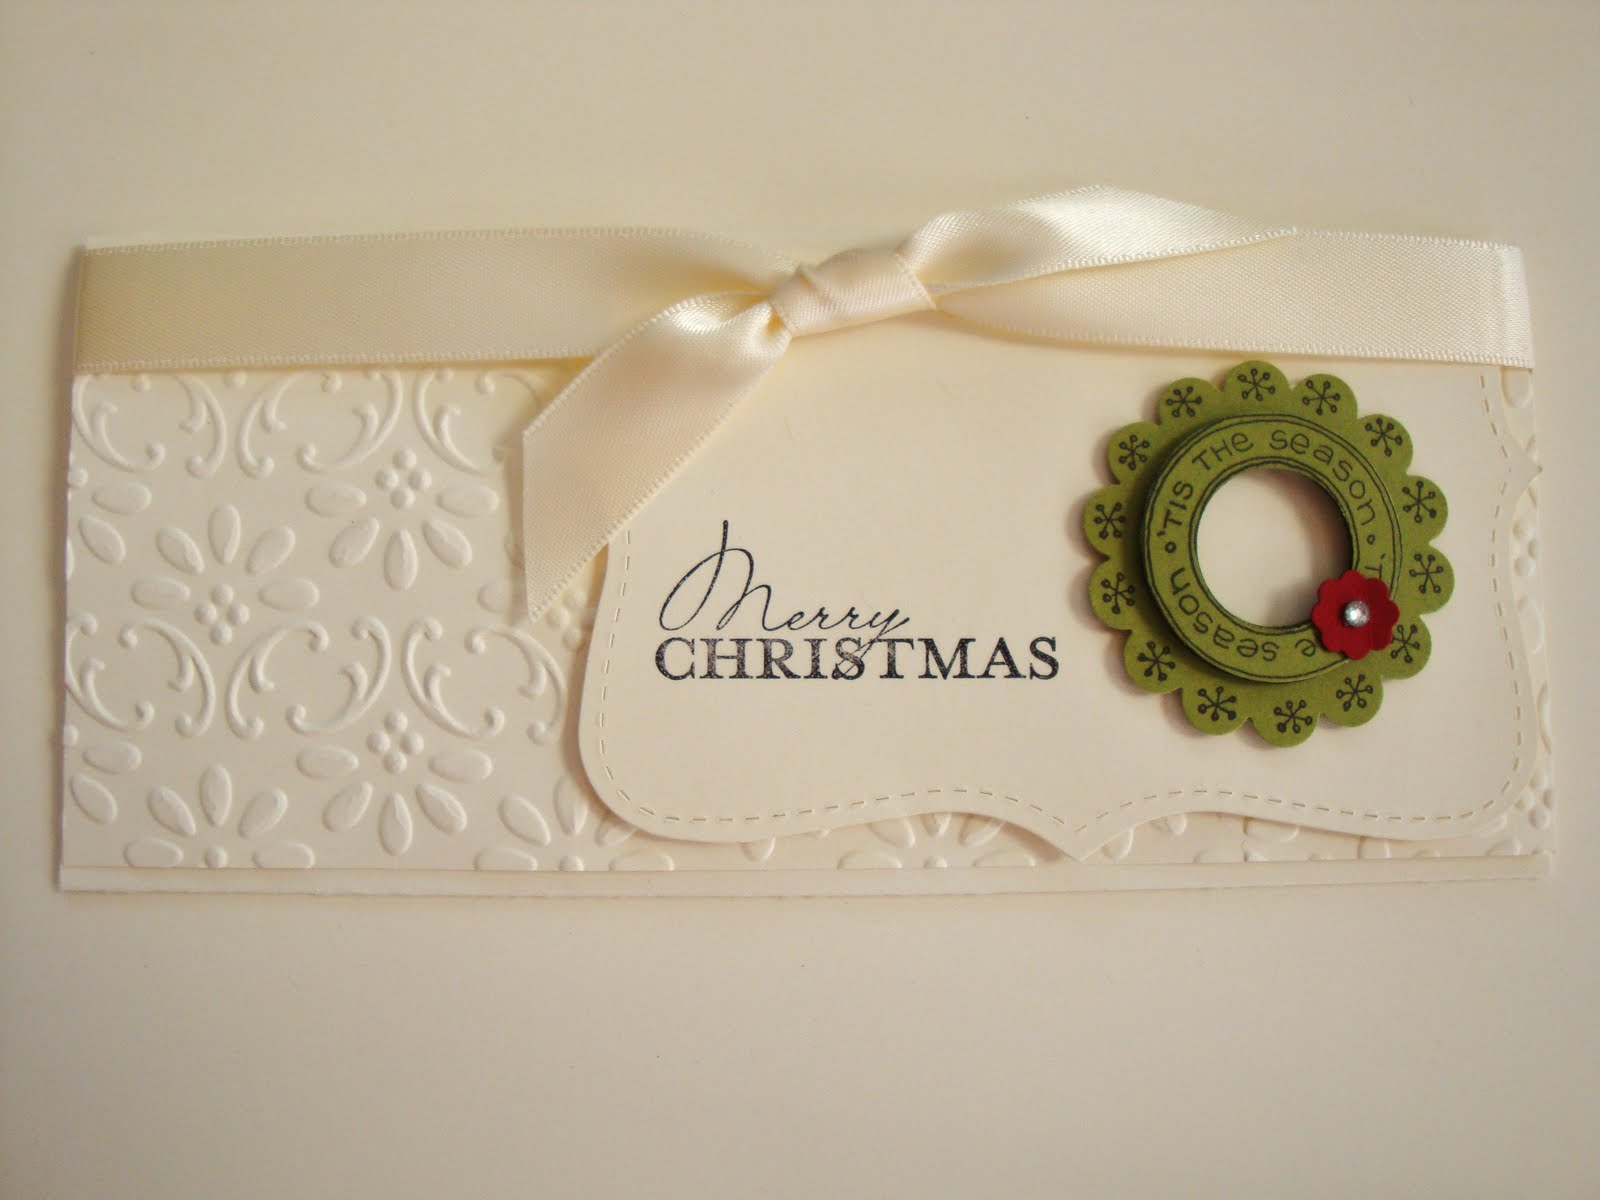 Gorgeous gift card/money holder | Cards from SU Christmas ...